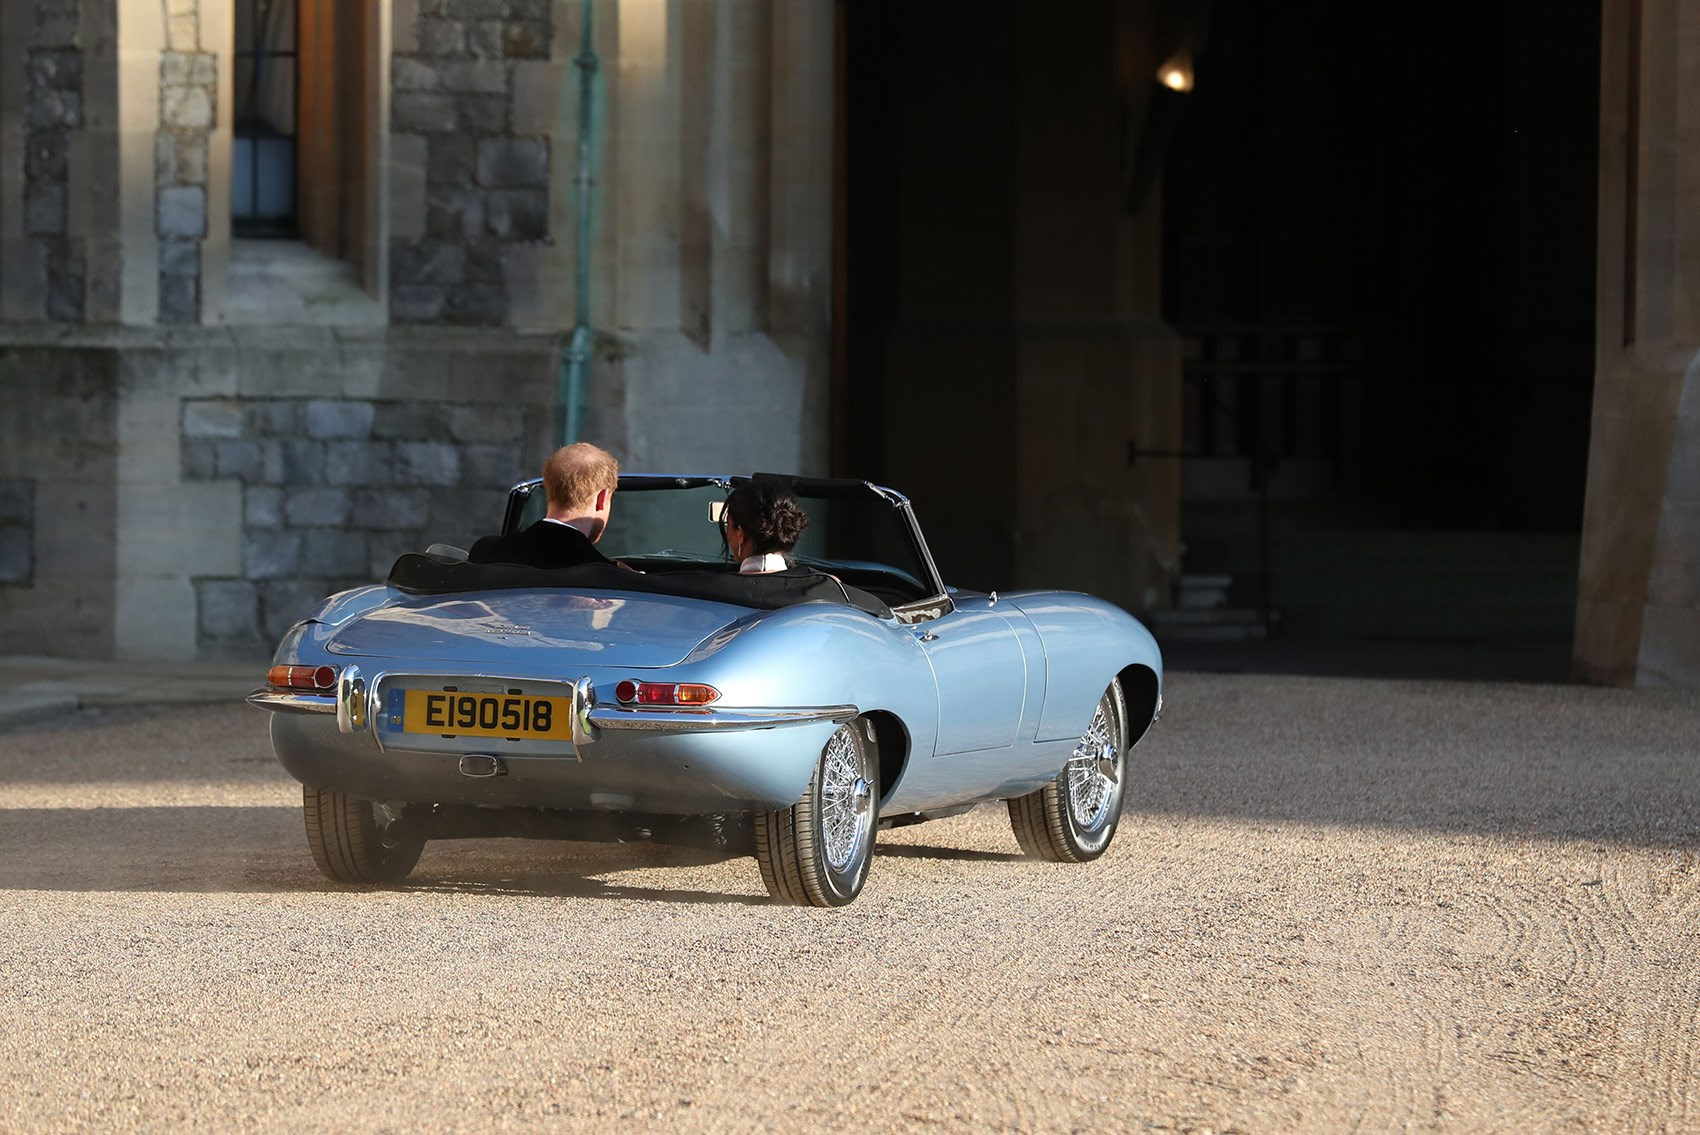 The Cars Of The Royal Wedding 2018 Prince Harry Meghan Markle Car